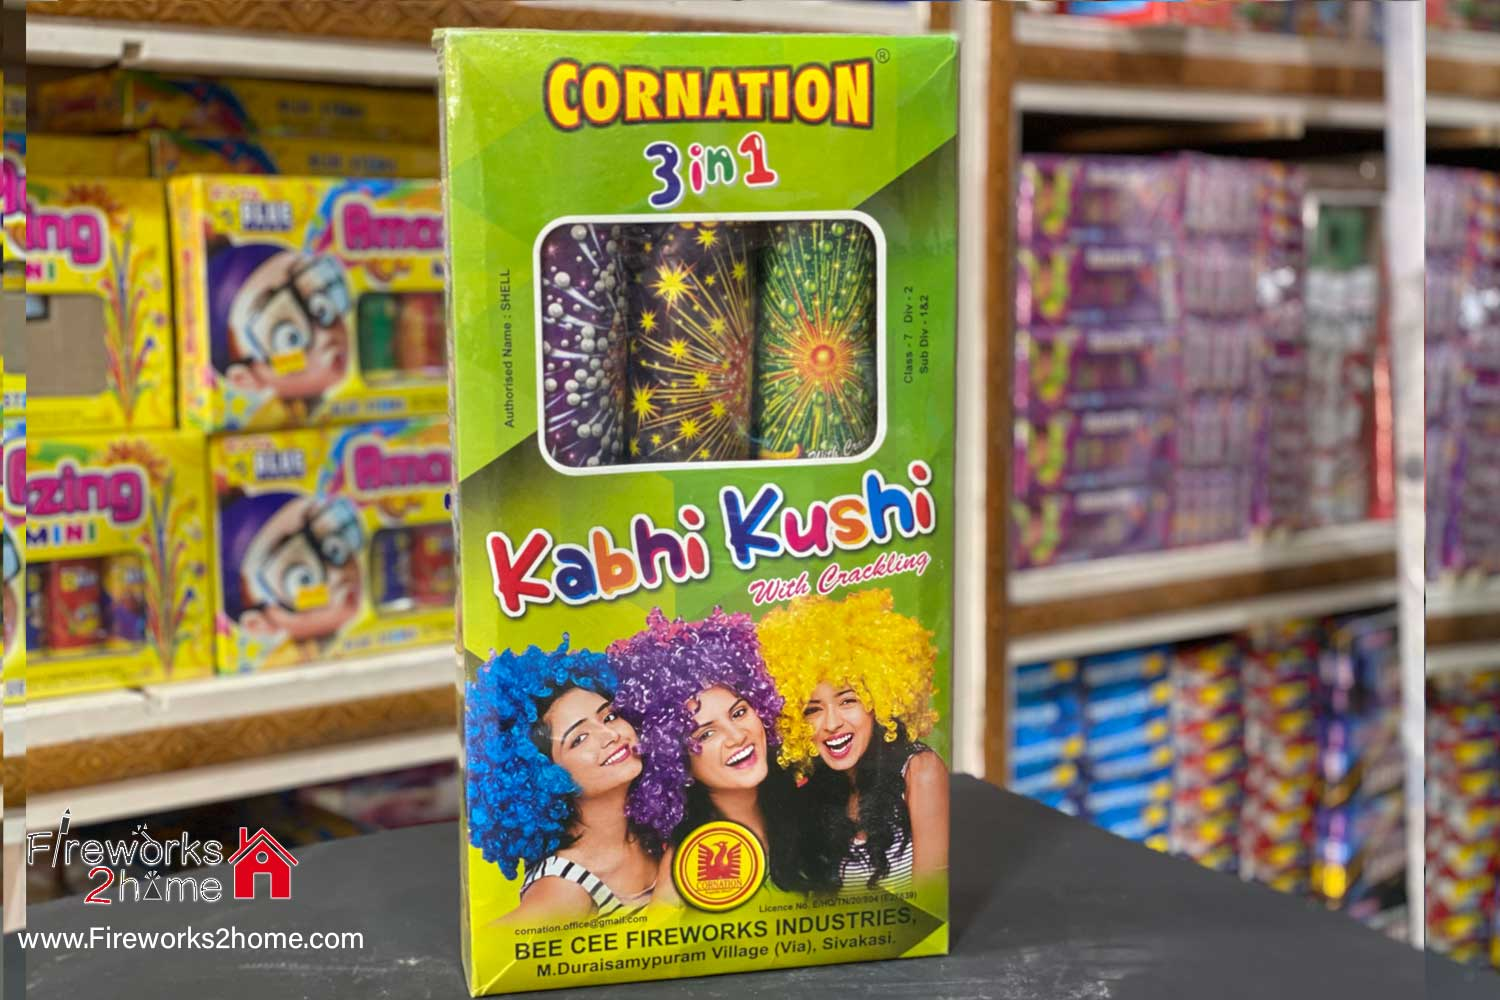 3-in-1-kabhi-kushi-with-crackling-cornation